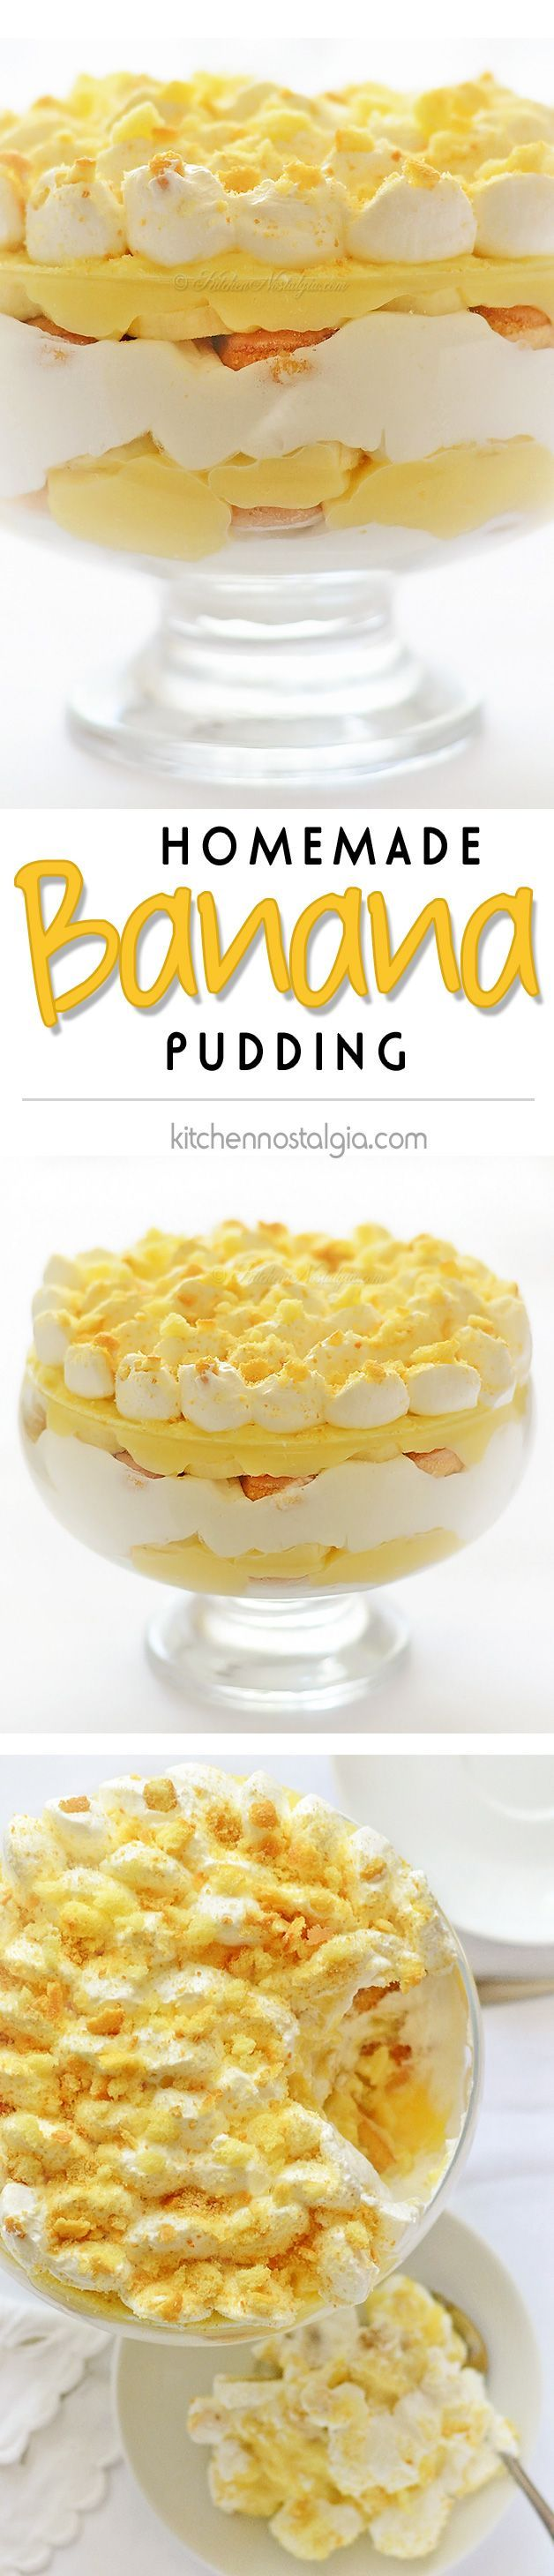 Homemade Banana Pudding - dreamy, easy to make Southern dessert; real pudding, the way it was made before instant pudding and Cool Whip were invented - kitchennostalgia.com